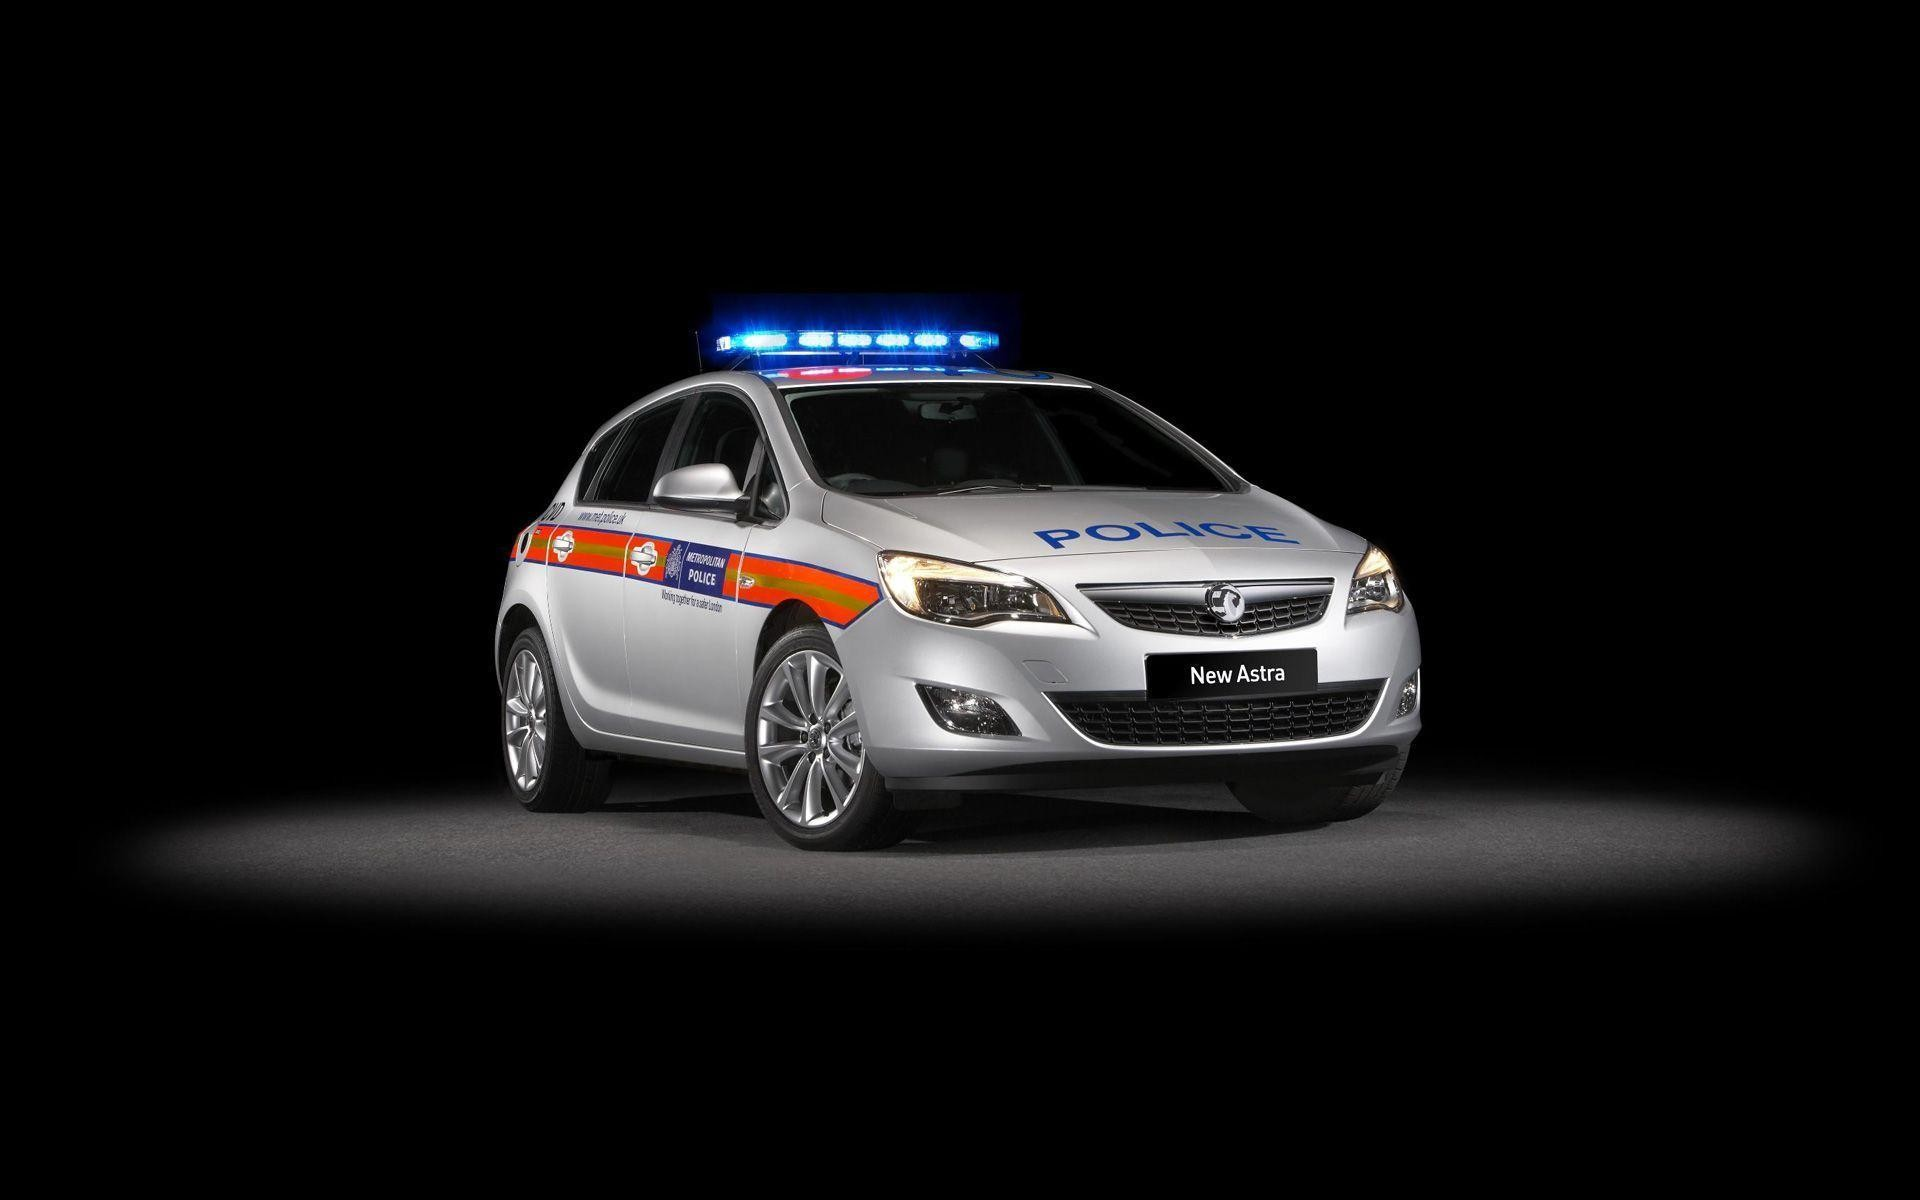 Police Wallpapers And Police Backgrounds 2 Of 2 Car Pictures